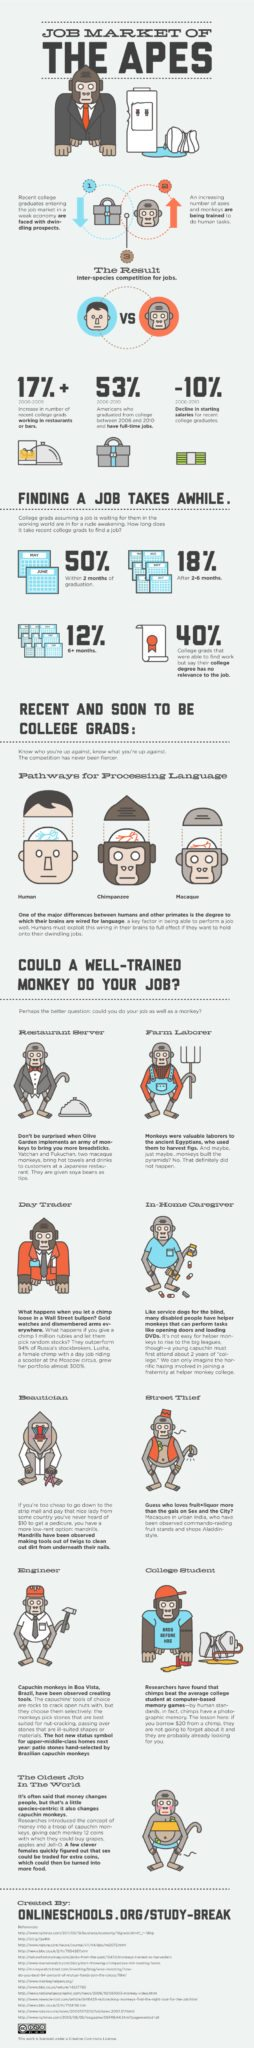 Job Market of The Apes